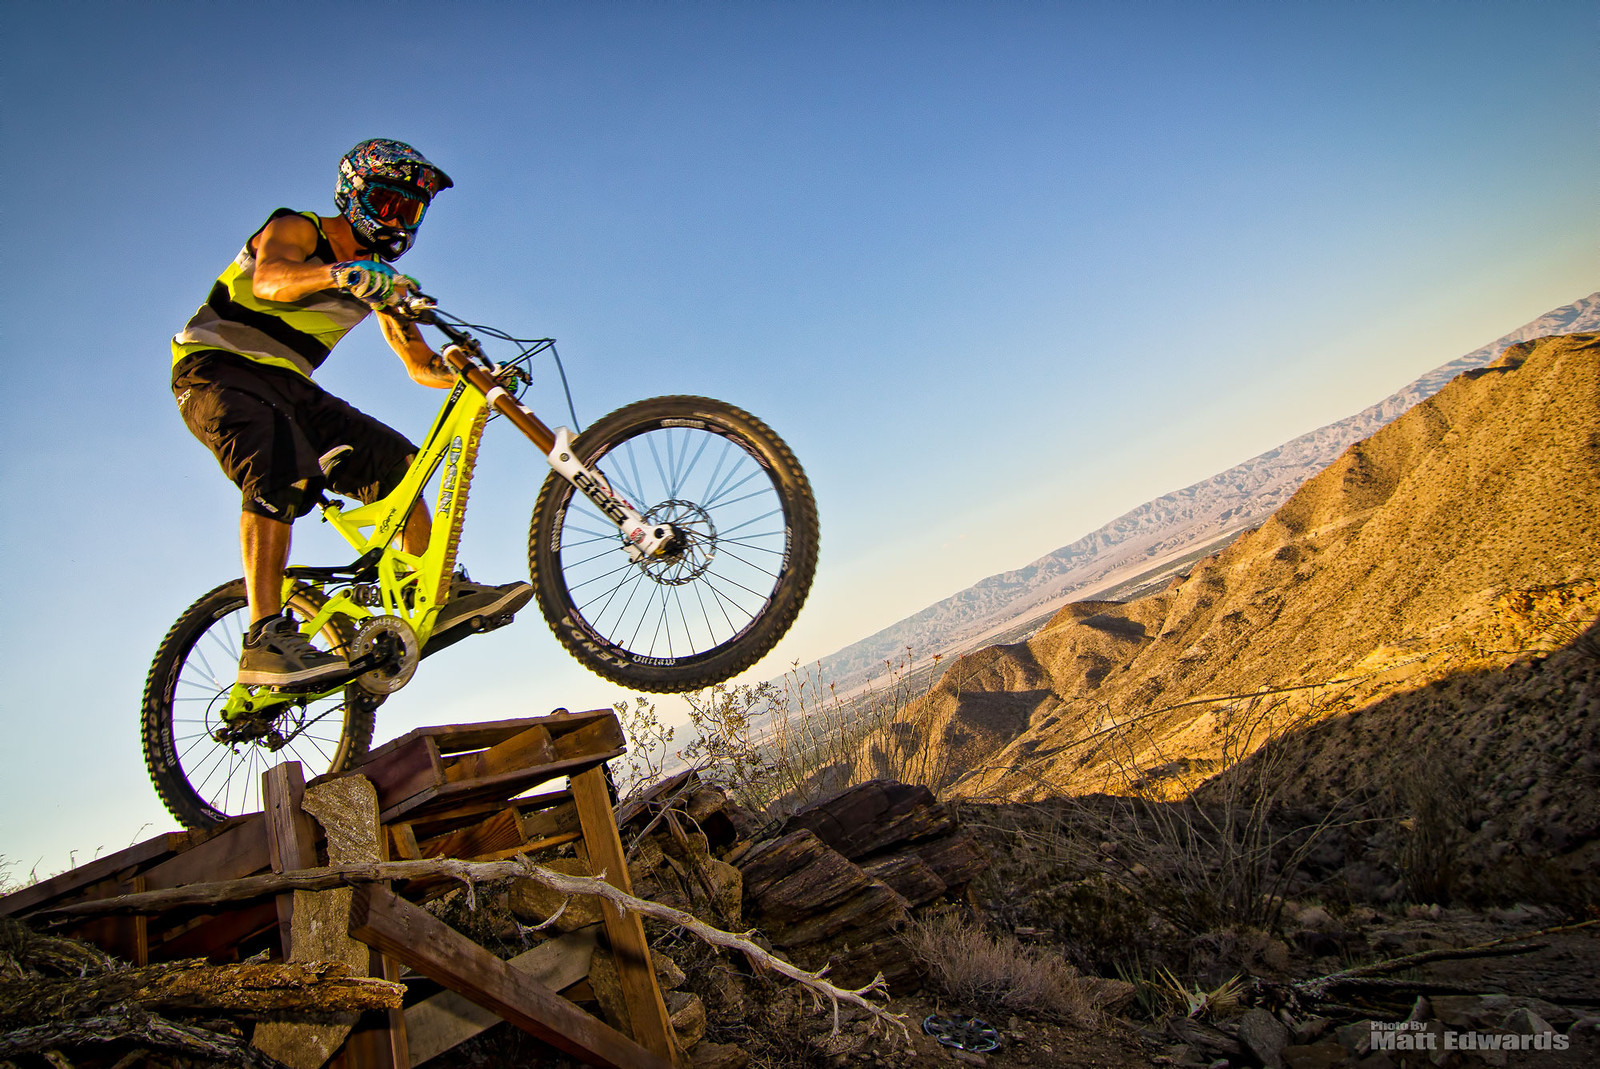 Ladder Drop - EdwardsEntertainment - Mountain Biking Pictures - Vital MTB